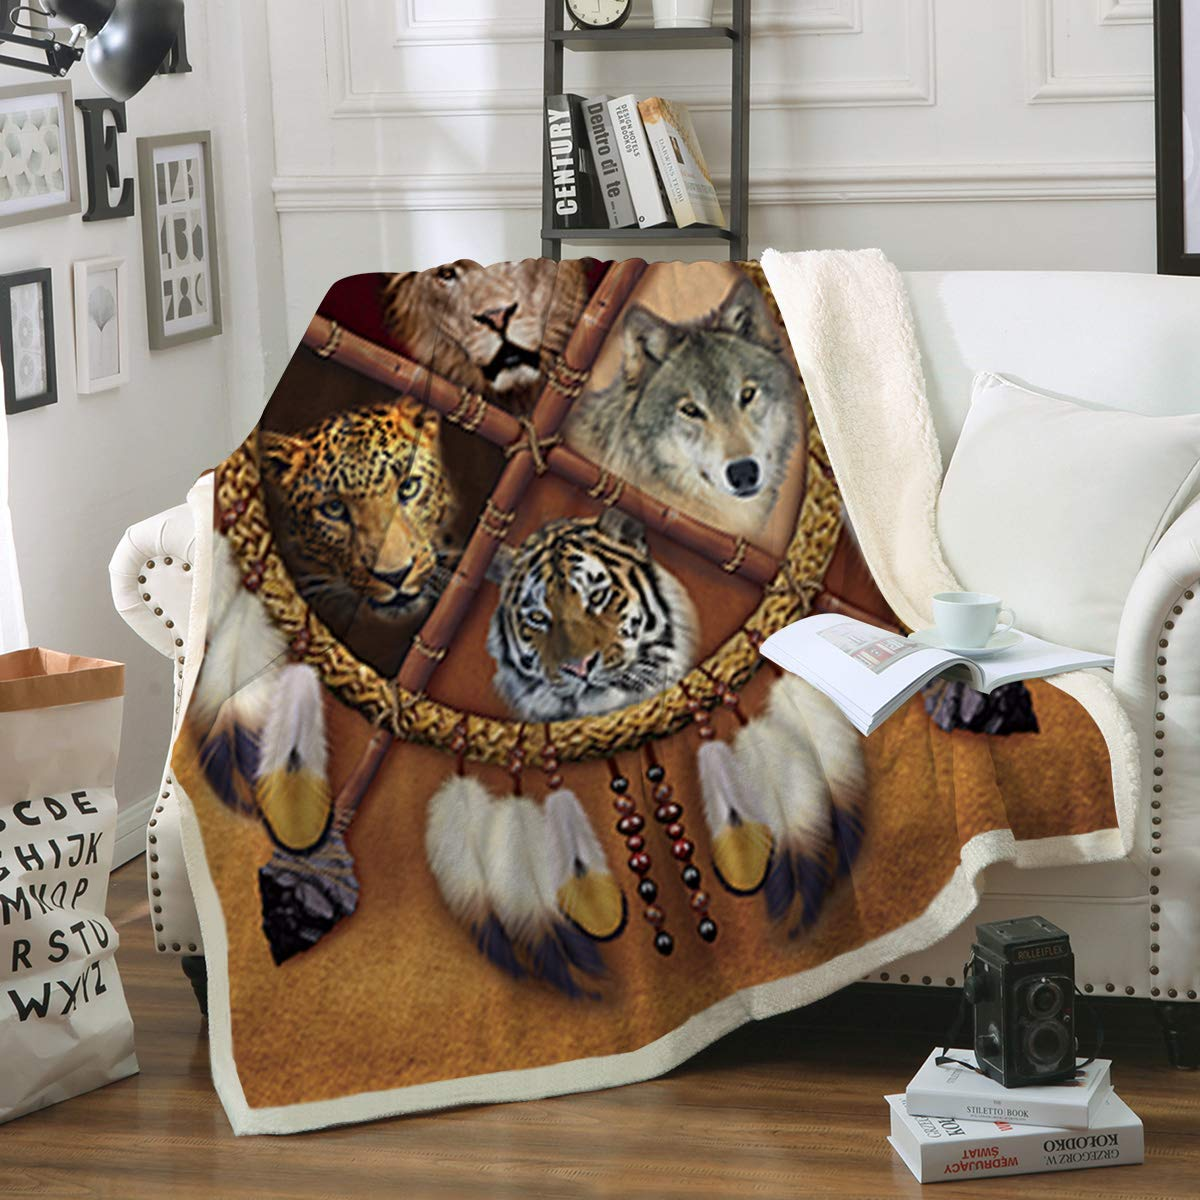 Sleepwish Wolf Dream Catcher Blanket Native American Animals Reversible Sherpa Throw Blanket Indian Gold Tribal Lion Tiger Leopard Fleece Blanket (60'' x 80'') by Sleepwish